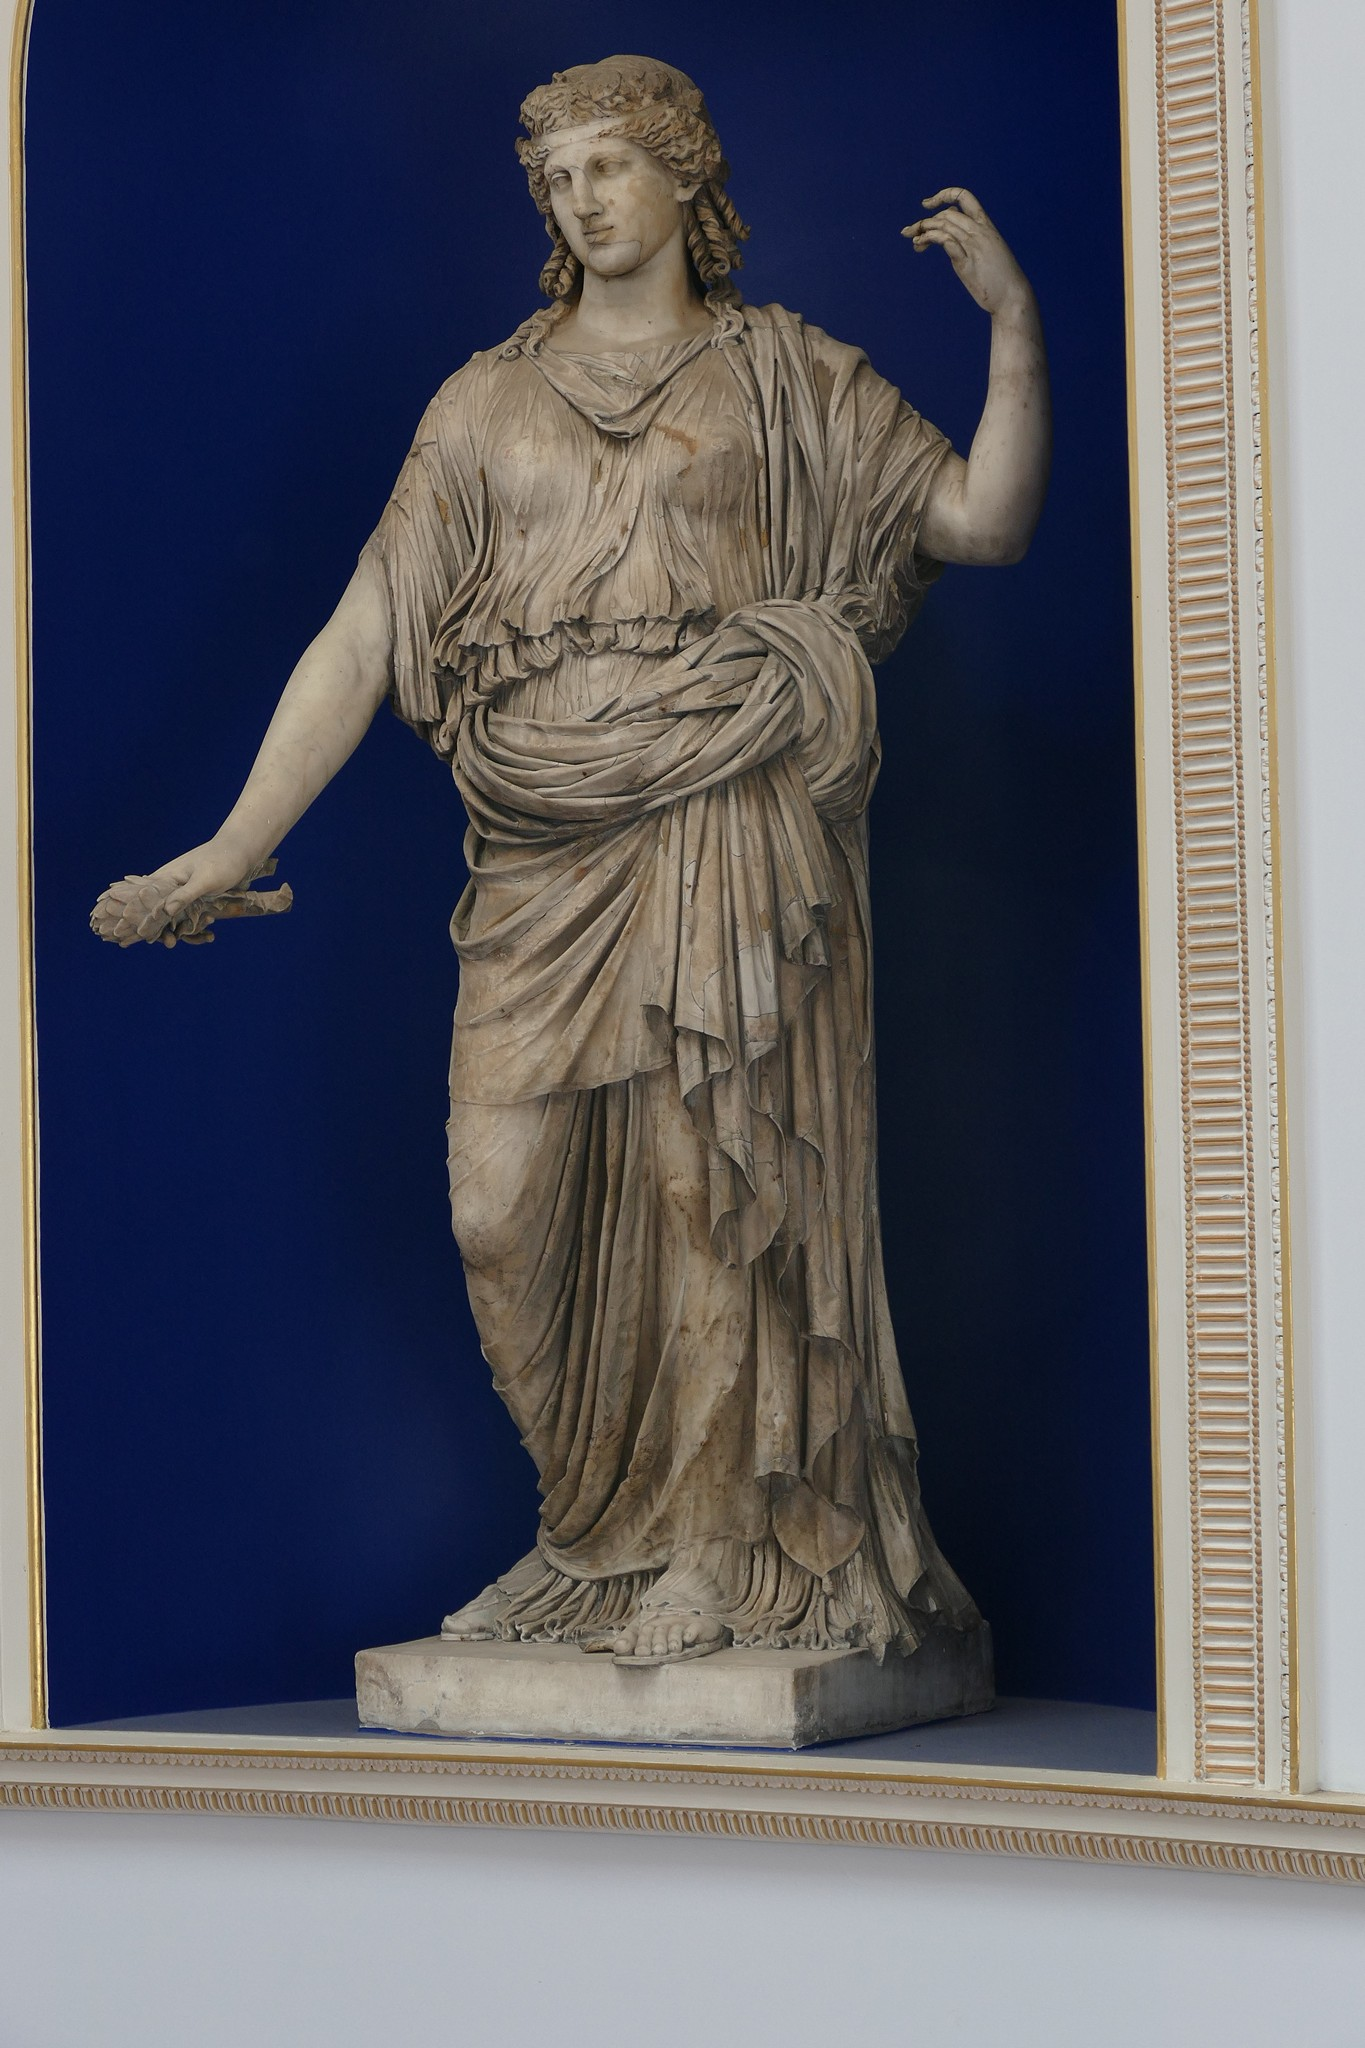 Statue of Ceres on the Staircase. It is reputed to be from Herculaneum.